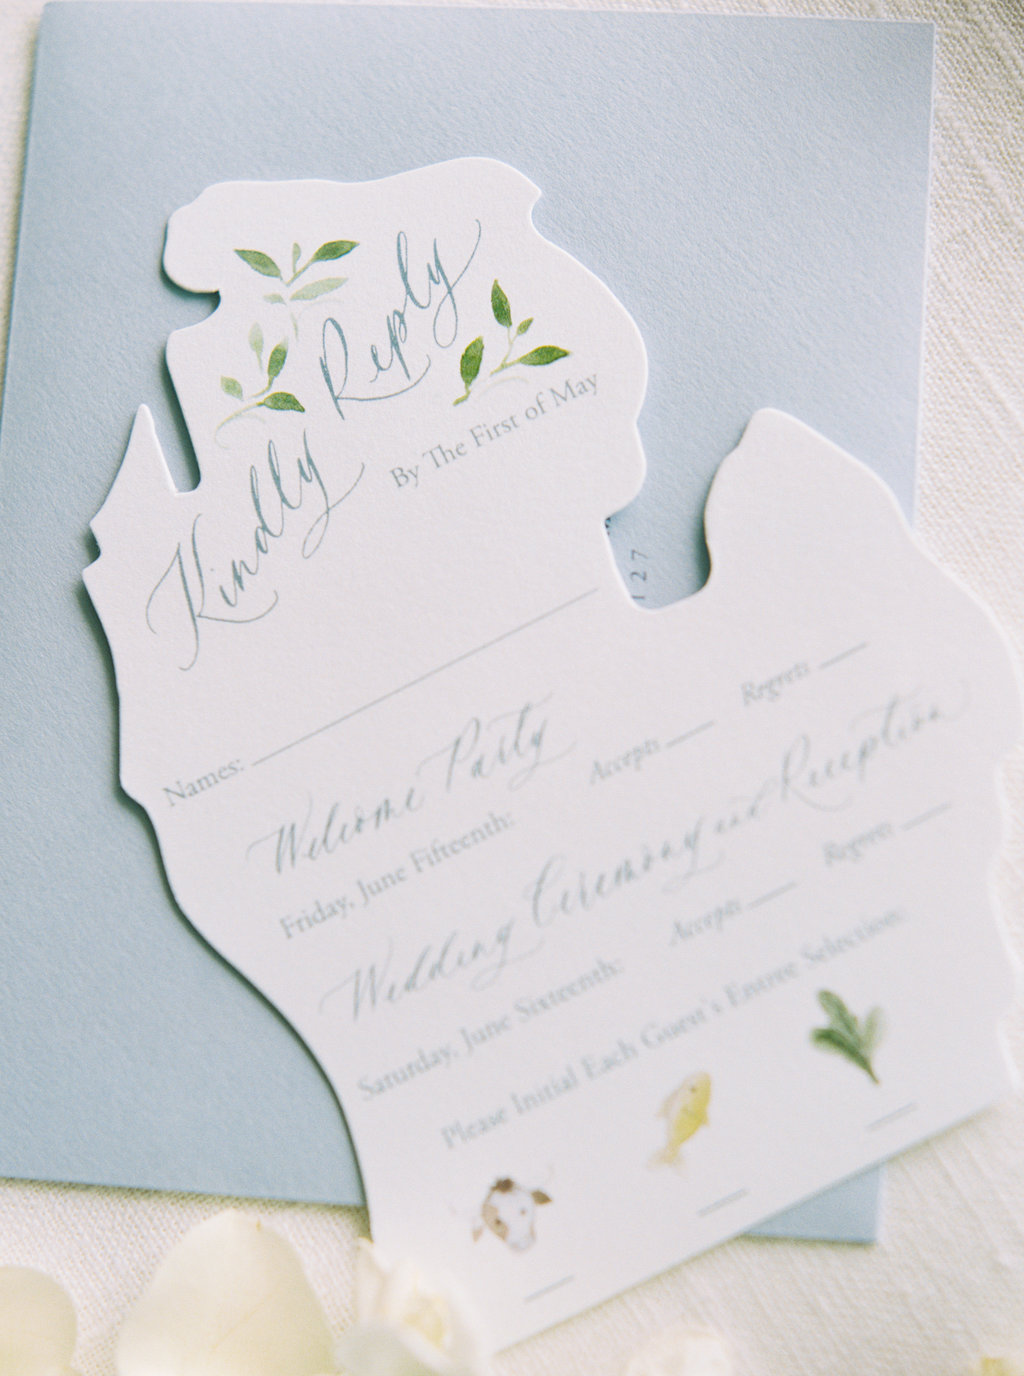 Watercolor wedding RSVP card. Die cut in the shape of Michigan.